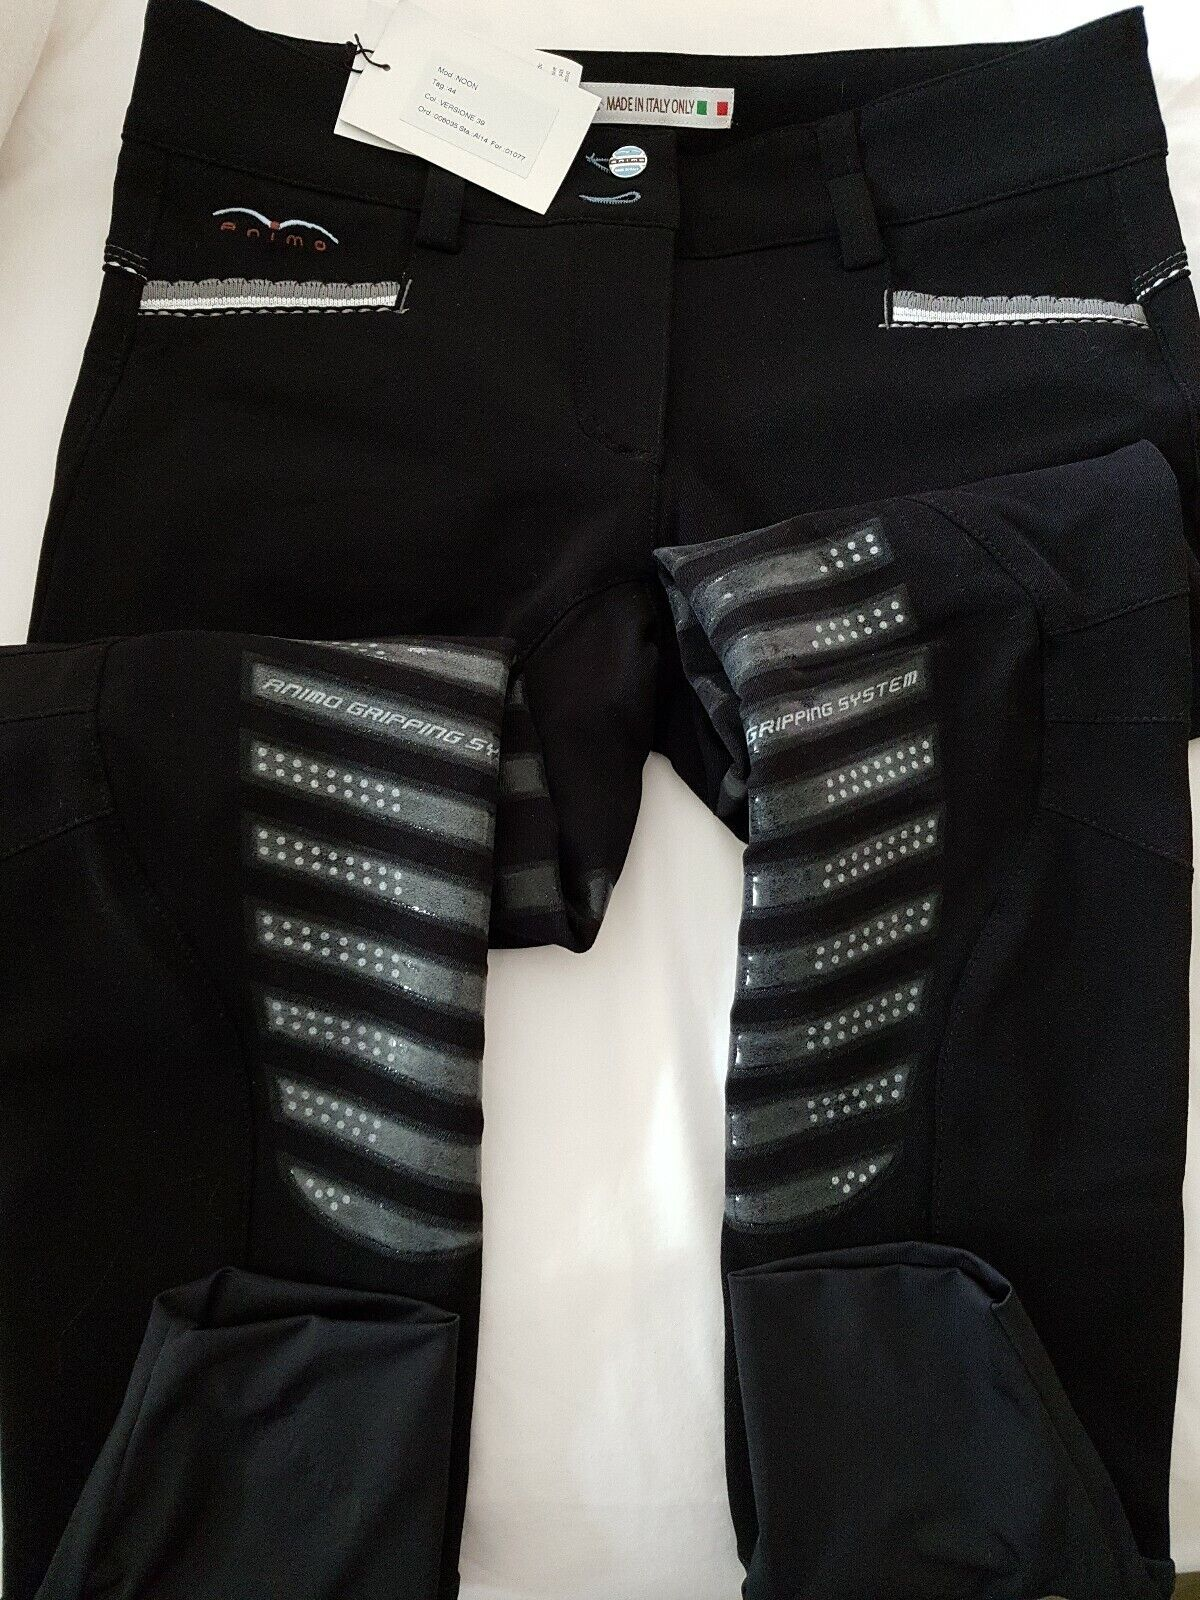 Animo NOON Full Gripping  System Breeches  good price